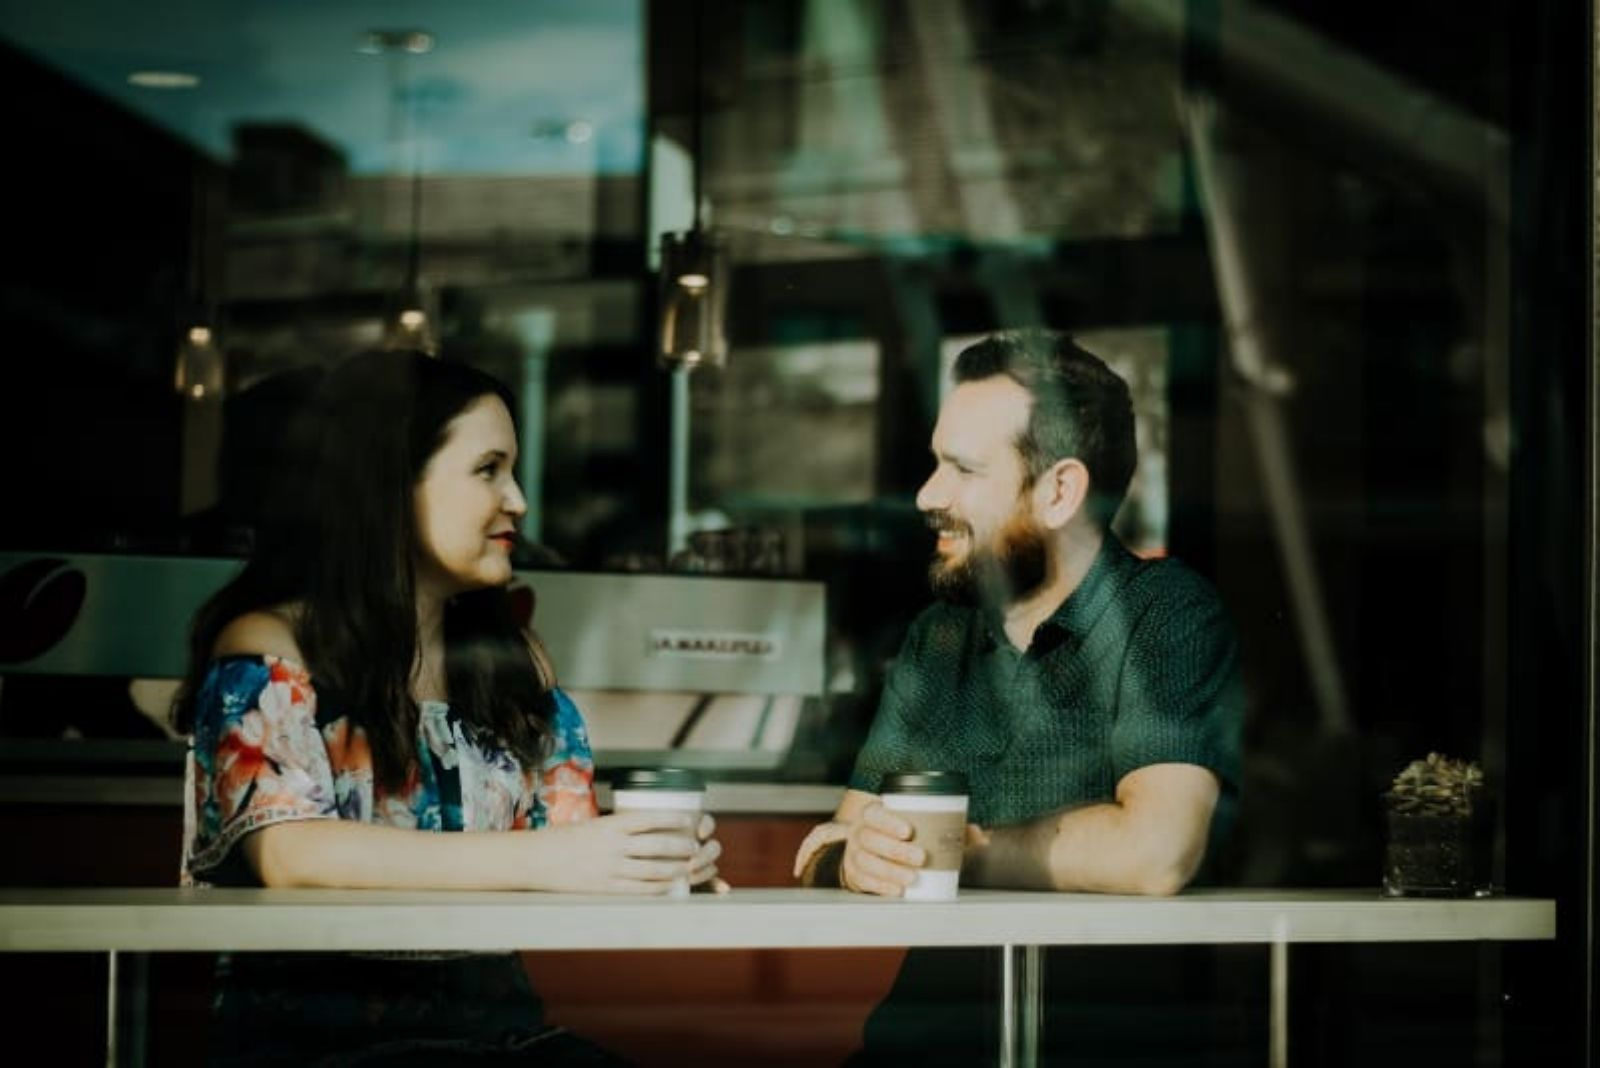 a man and a woman sit and talk